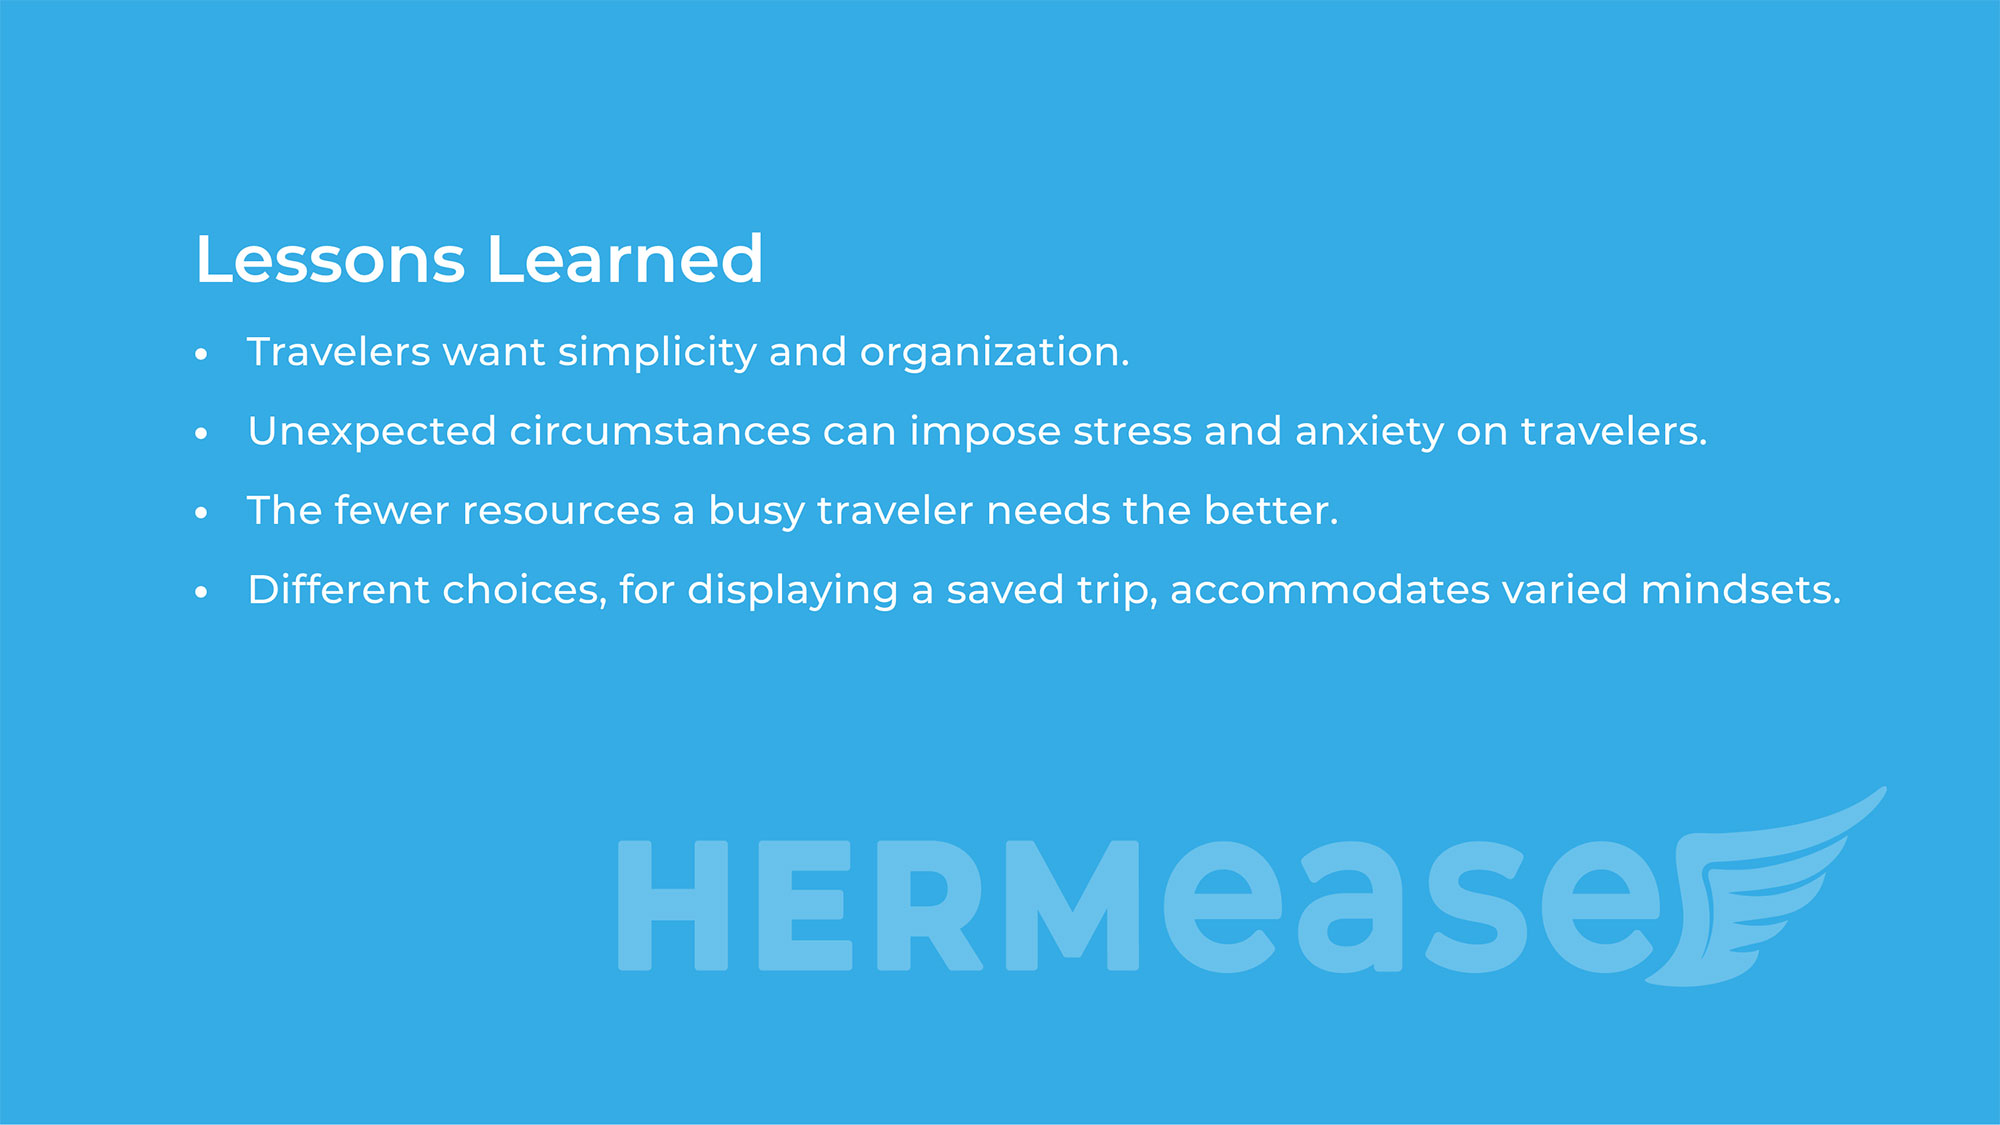 Hermease-LessonsLearned